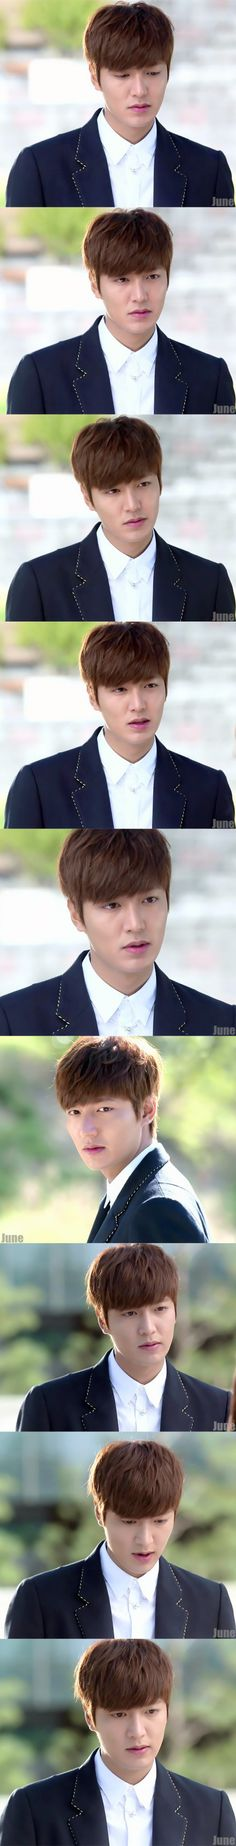 Lee Min Ho as Kim Tan...loved his puppy faces in The Heirs